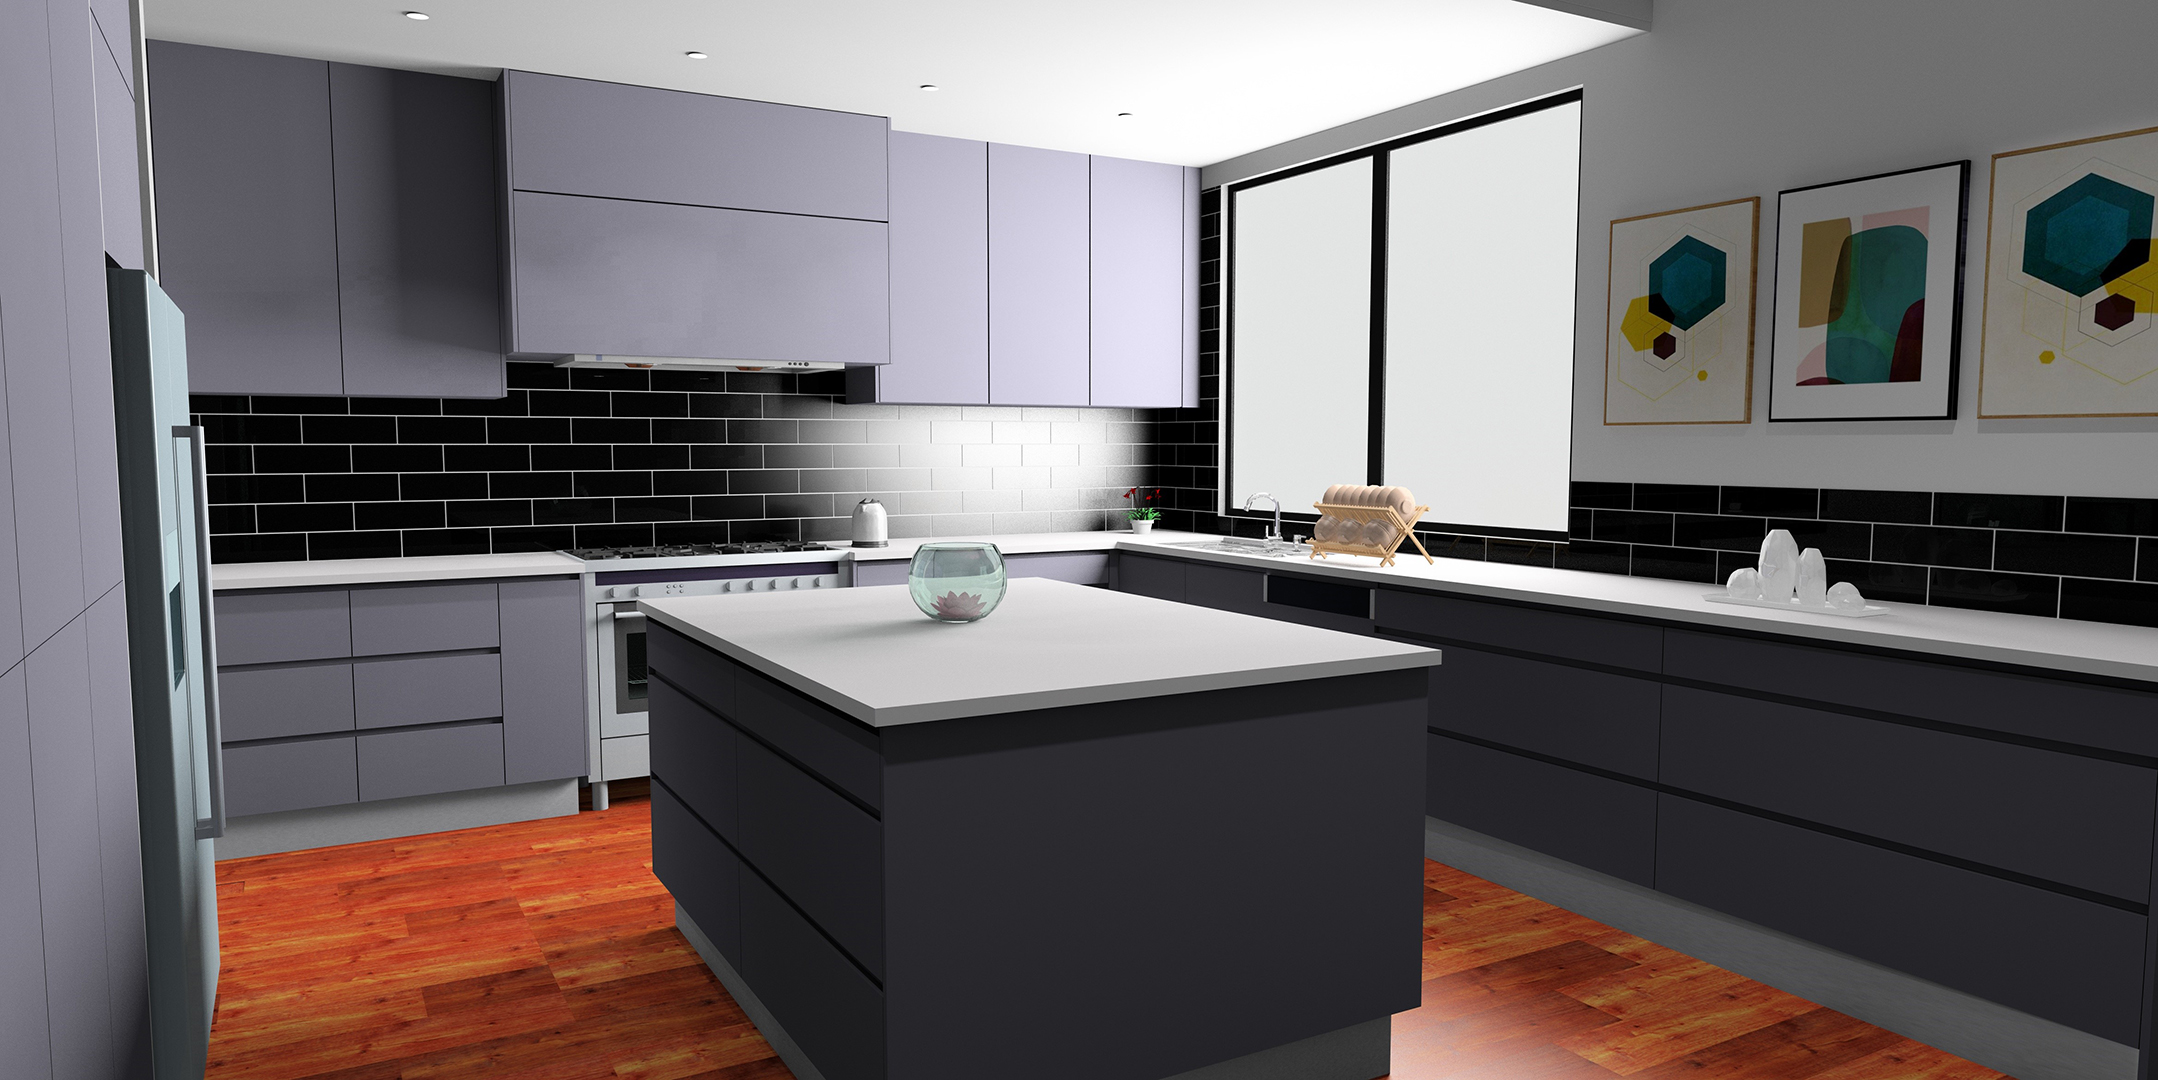 Design & Sell Kitchens With KD Max Software | Cabinets By ...